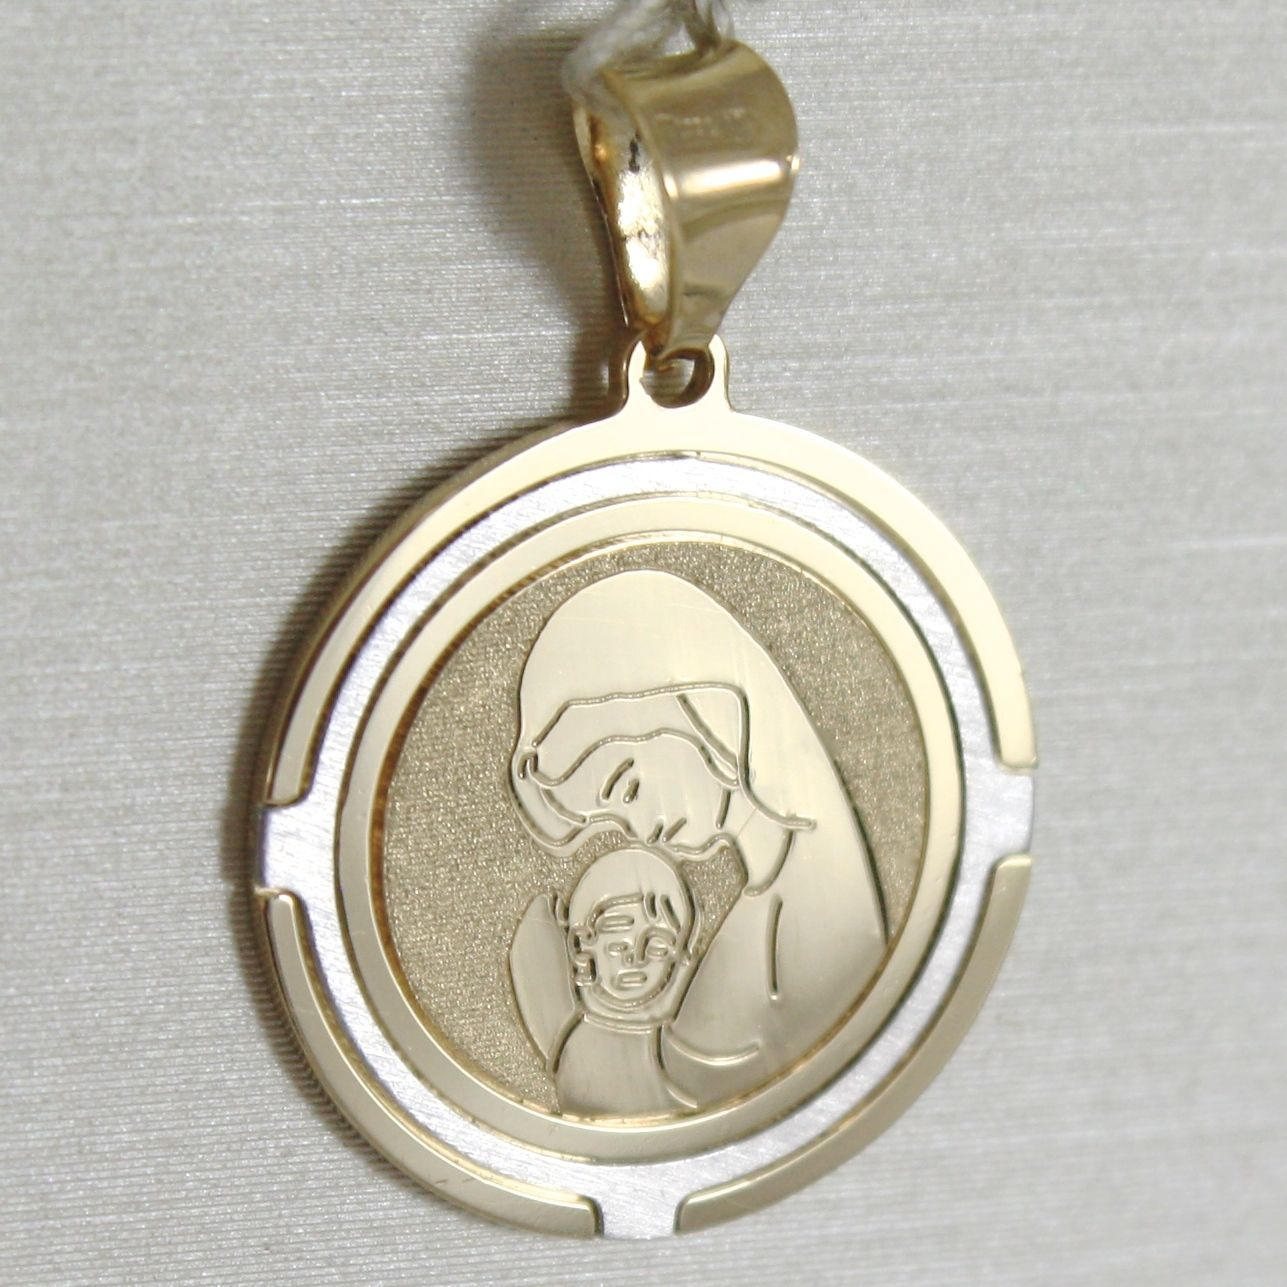 PENDANT MEDAL YELLOW GOLD WHITE 750 18K, MADONNA, Virgo Mary jane And Jesus